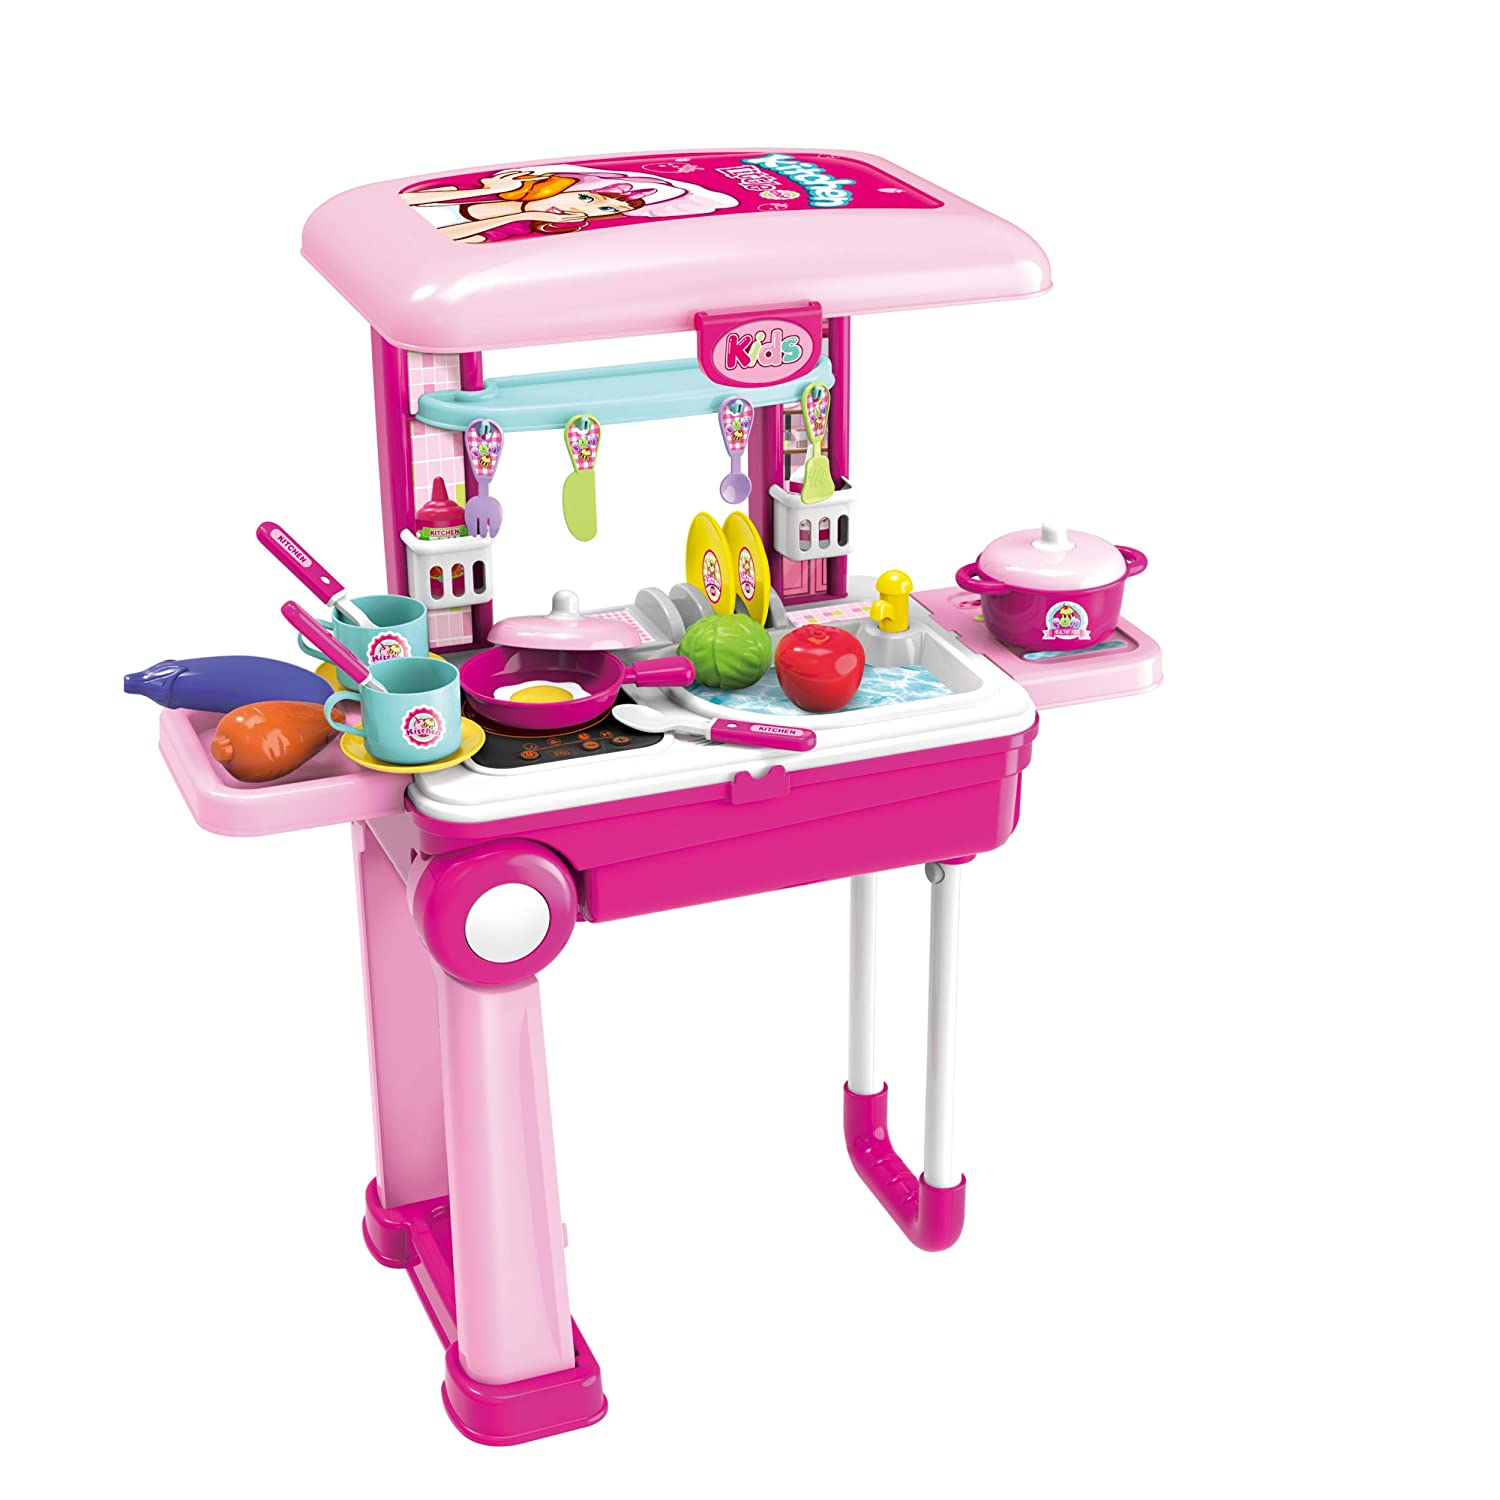 Toy Chef 2-in-1 Travel Suitcase Kitchen Set for Children   Includes Toy Pots, Pans, Dishes, Utensils & Foods ABS Plastic Pretend Play Kit for Boys & Girls   Great Gifting Idea Kitchen